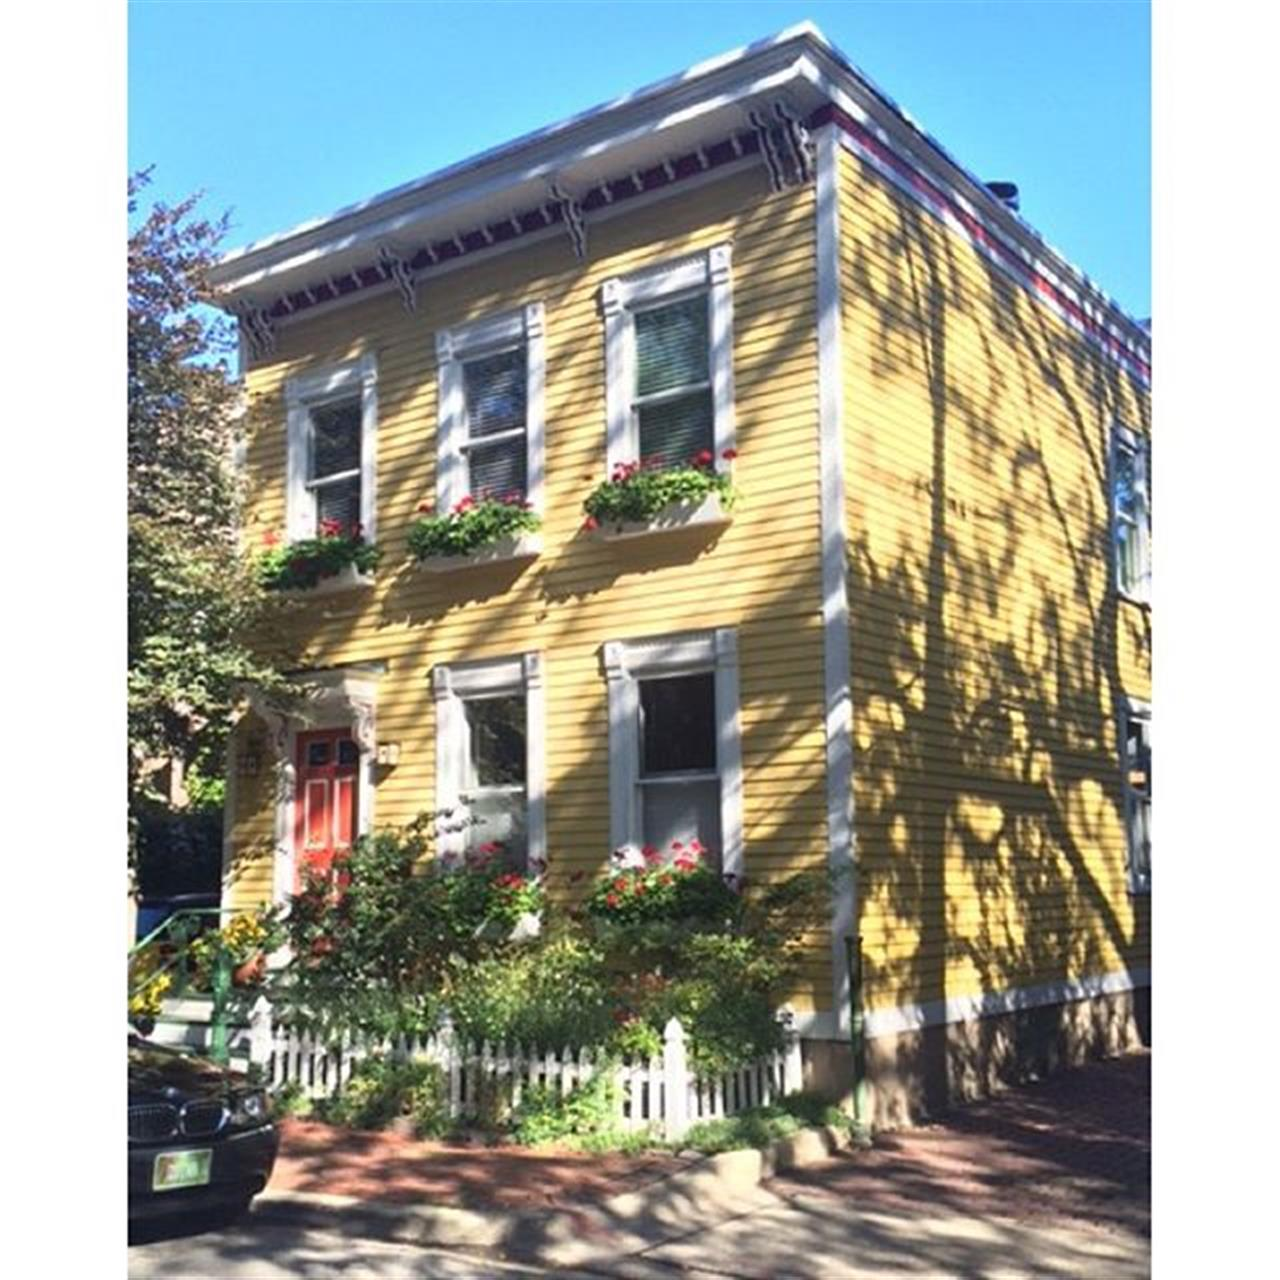 Old town homes #chicago #oldtown #lincolnpark #leadingrelocal #gardens